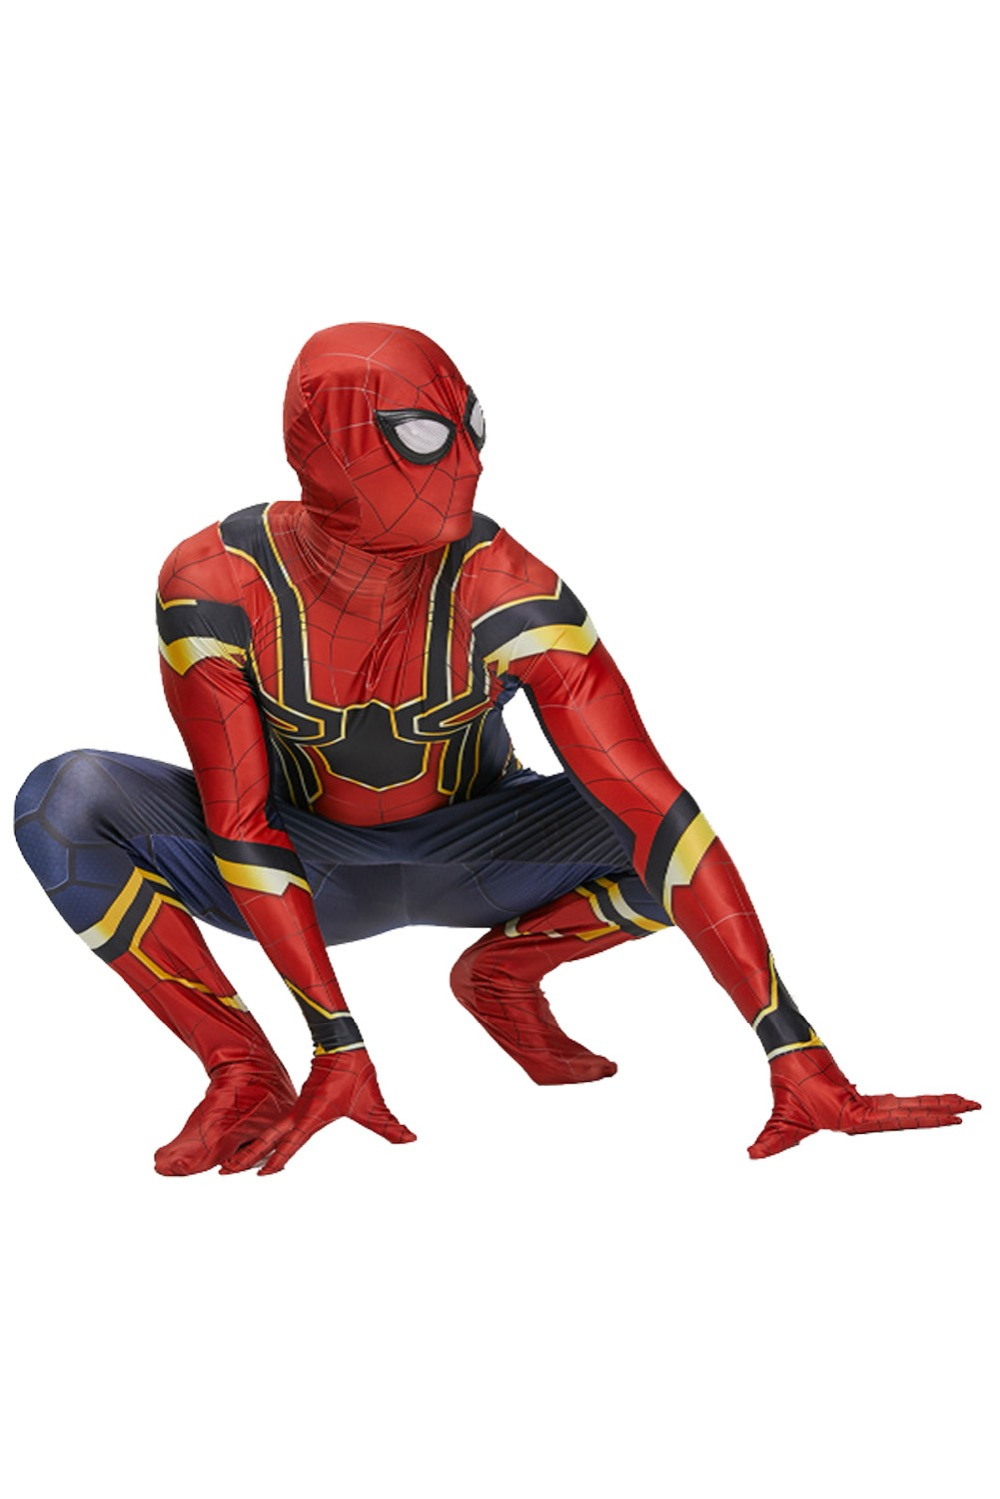 2018 Spiderman Costume Spiderman Homecoming Cosplay Costume Tom Holland Iron Spider Man Suit